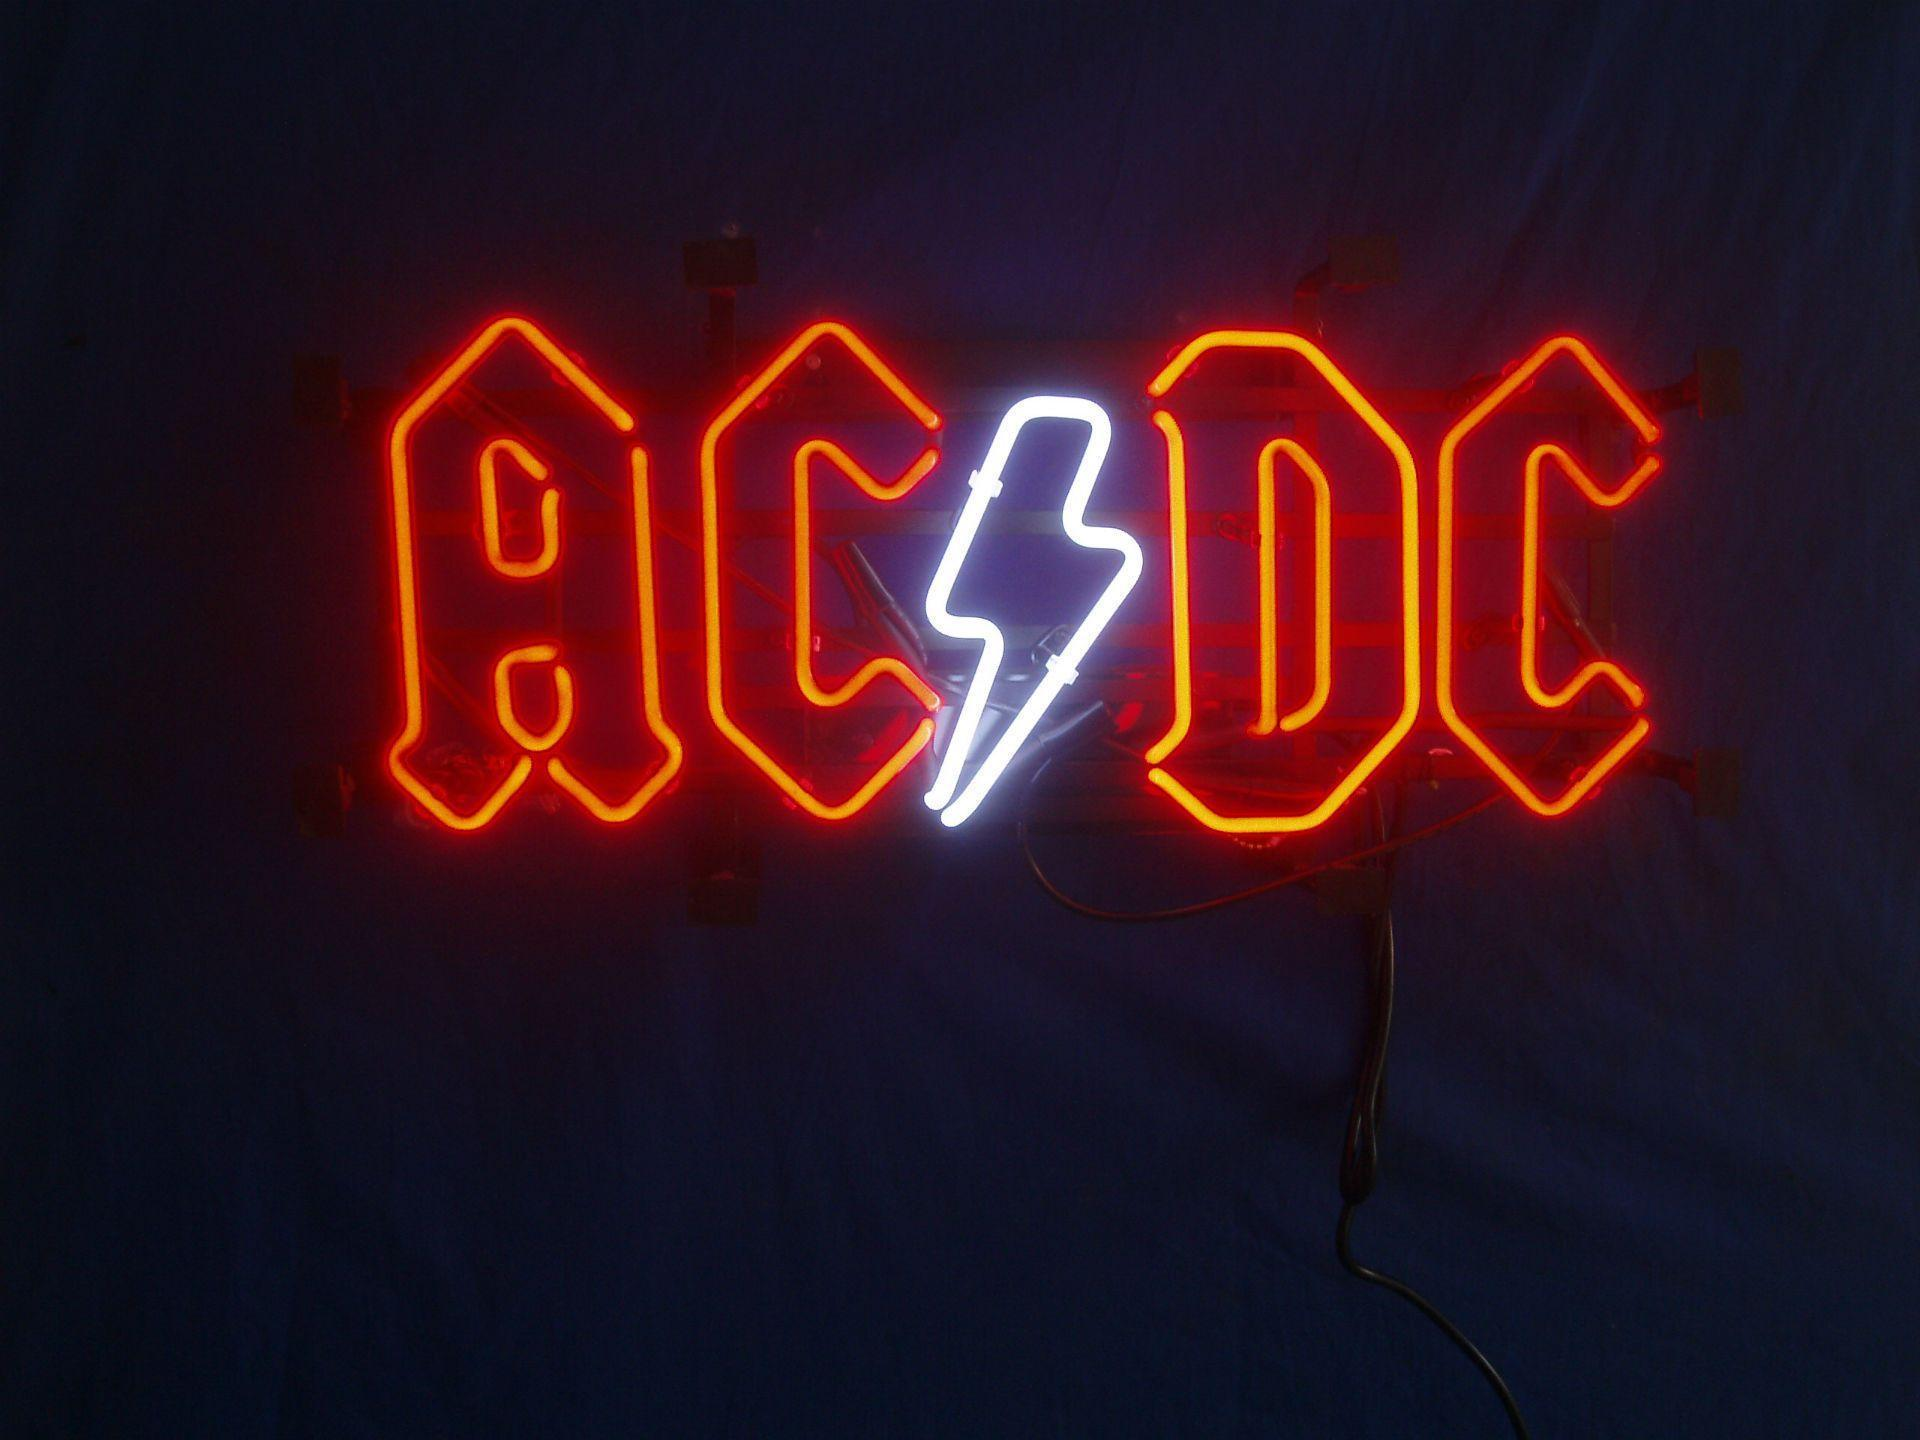 AC/DC Computer Wallpapers, Desktop Backgrounds 1920x1440 Id: 314527